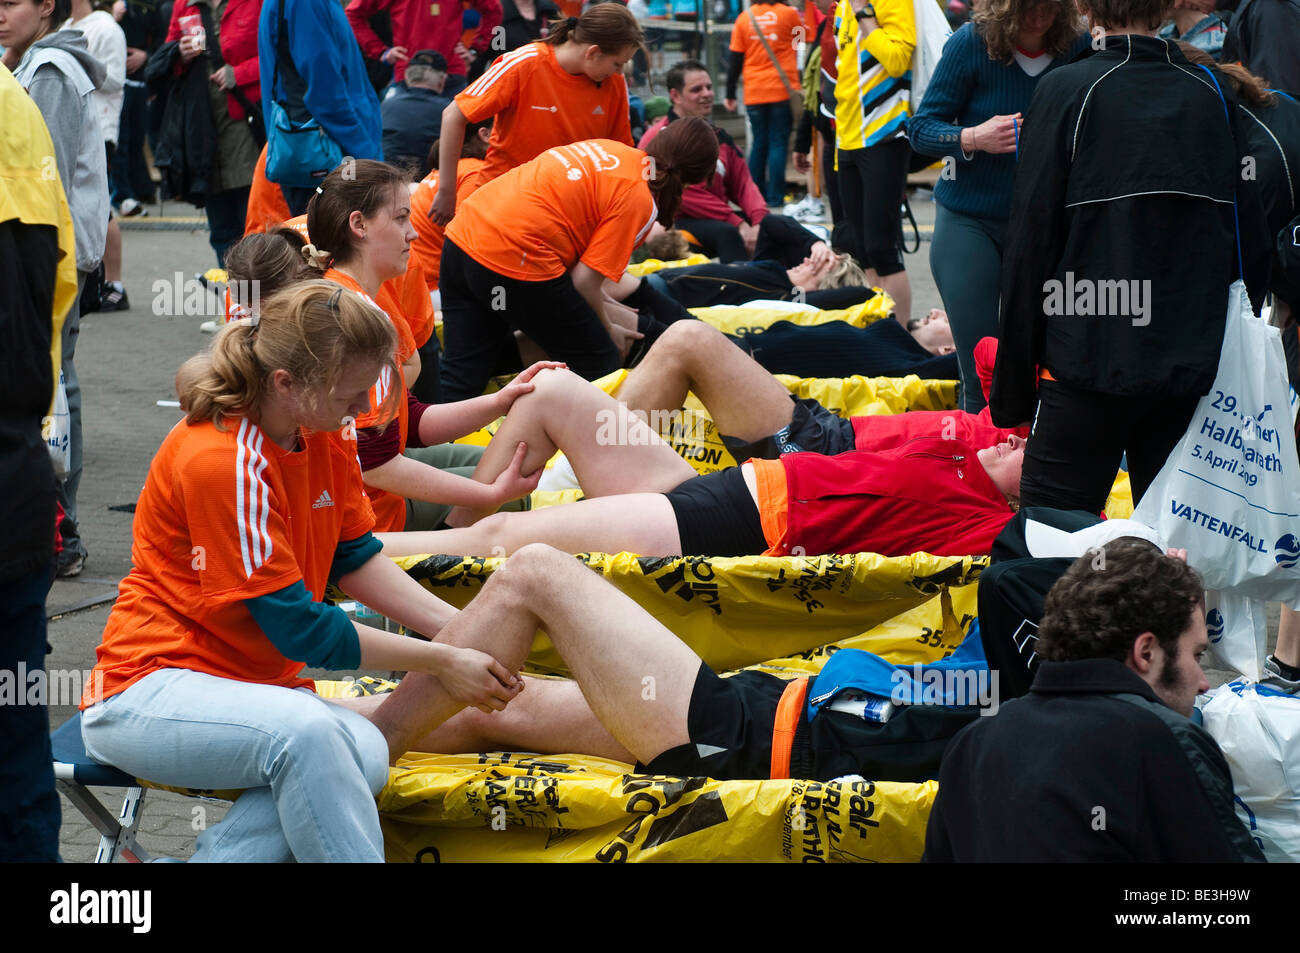 After the race runners can get massages, half marathon with over 25, 000 runners and wheelchair users, Berlin, Germany, - Stock Image